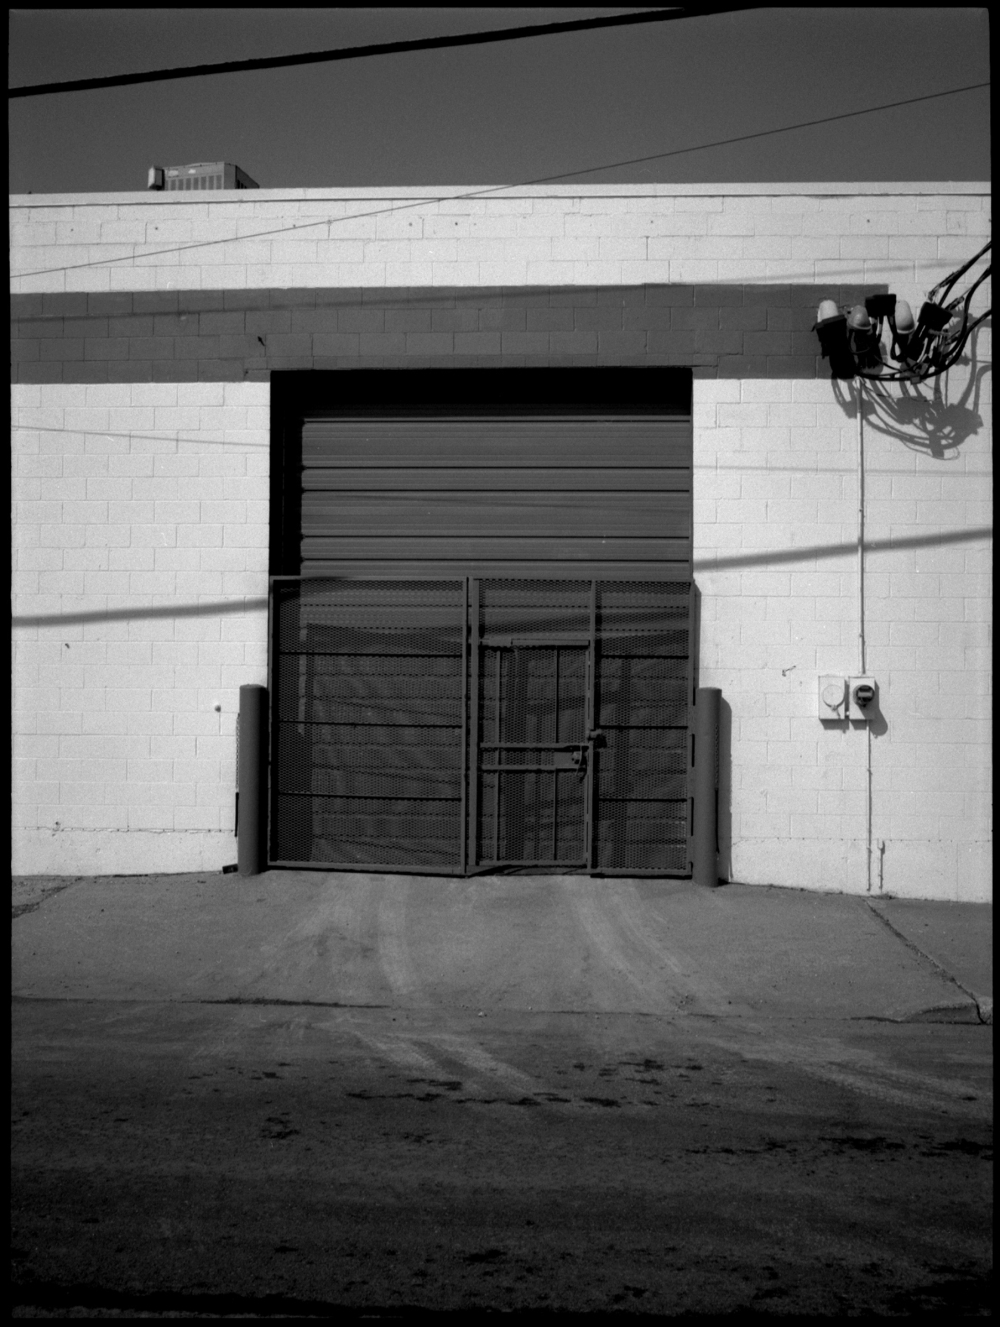 kck garage - grant edwards photography